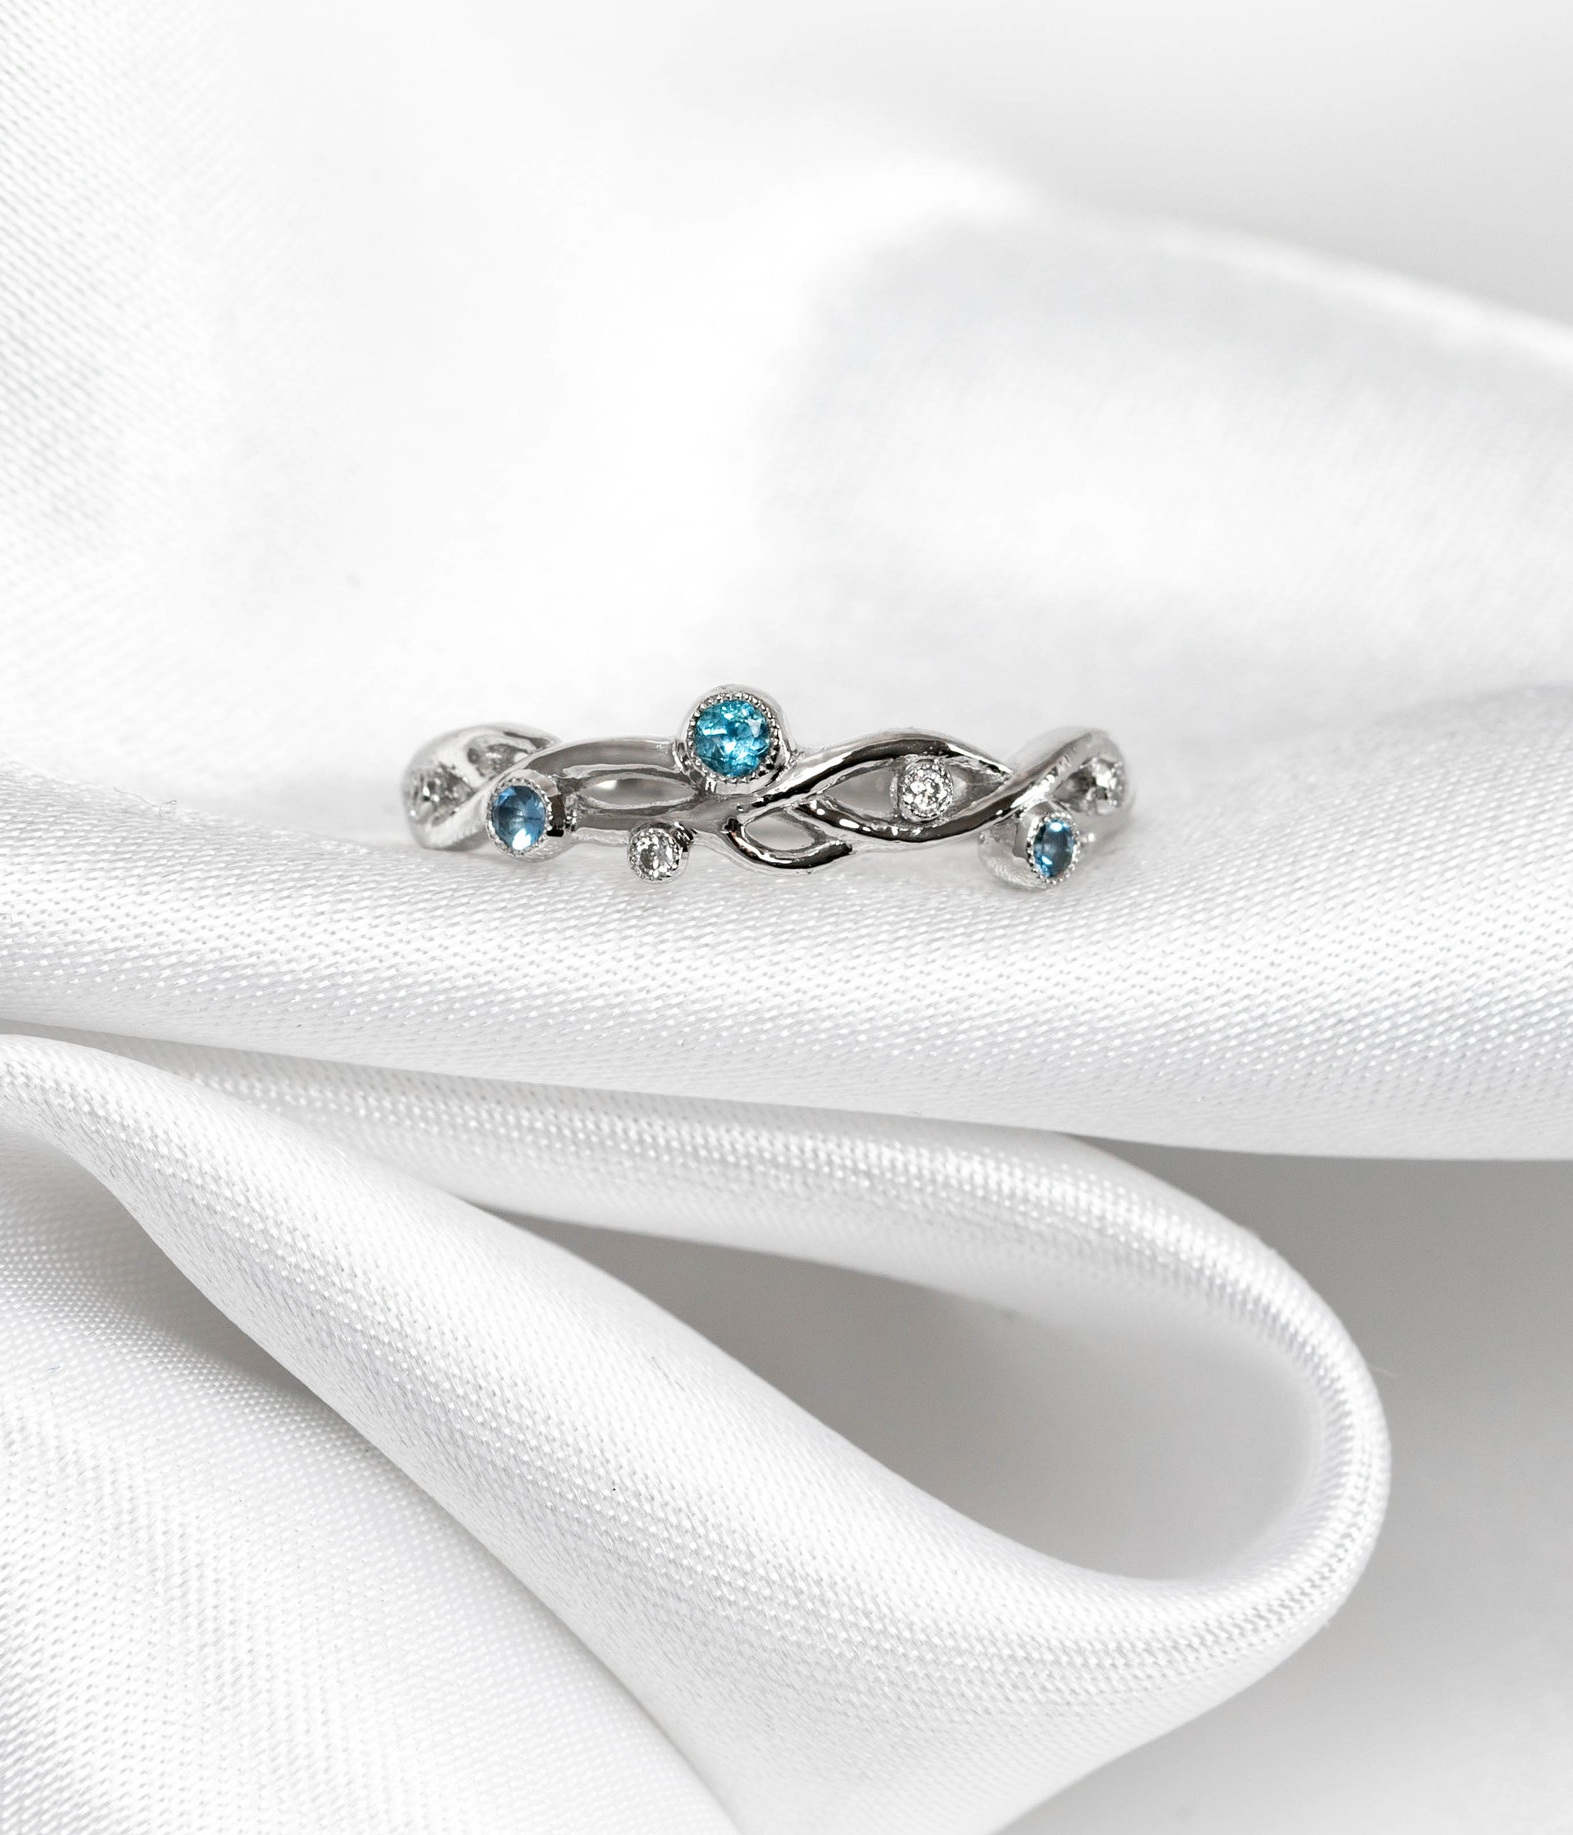 Platinum mounted Aquamarine and diamond entwined band ring. Made in Chichester, England.